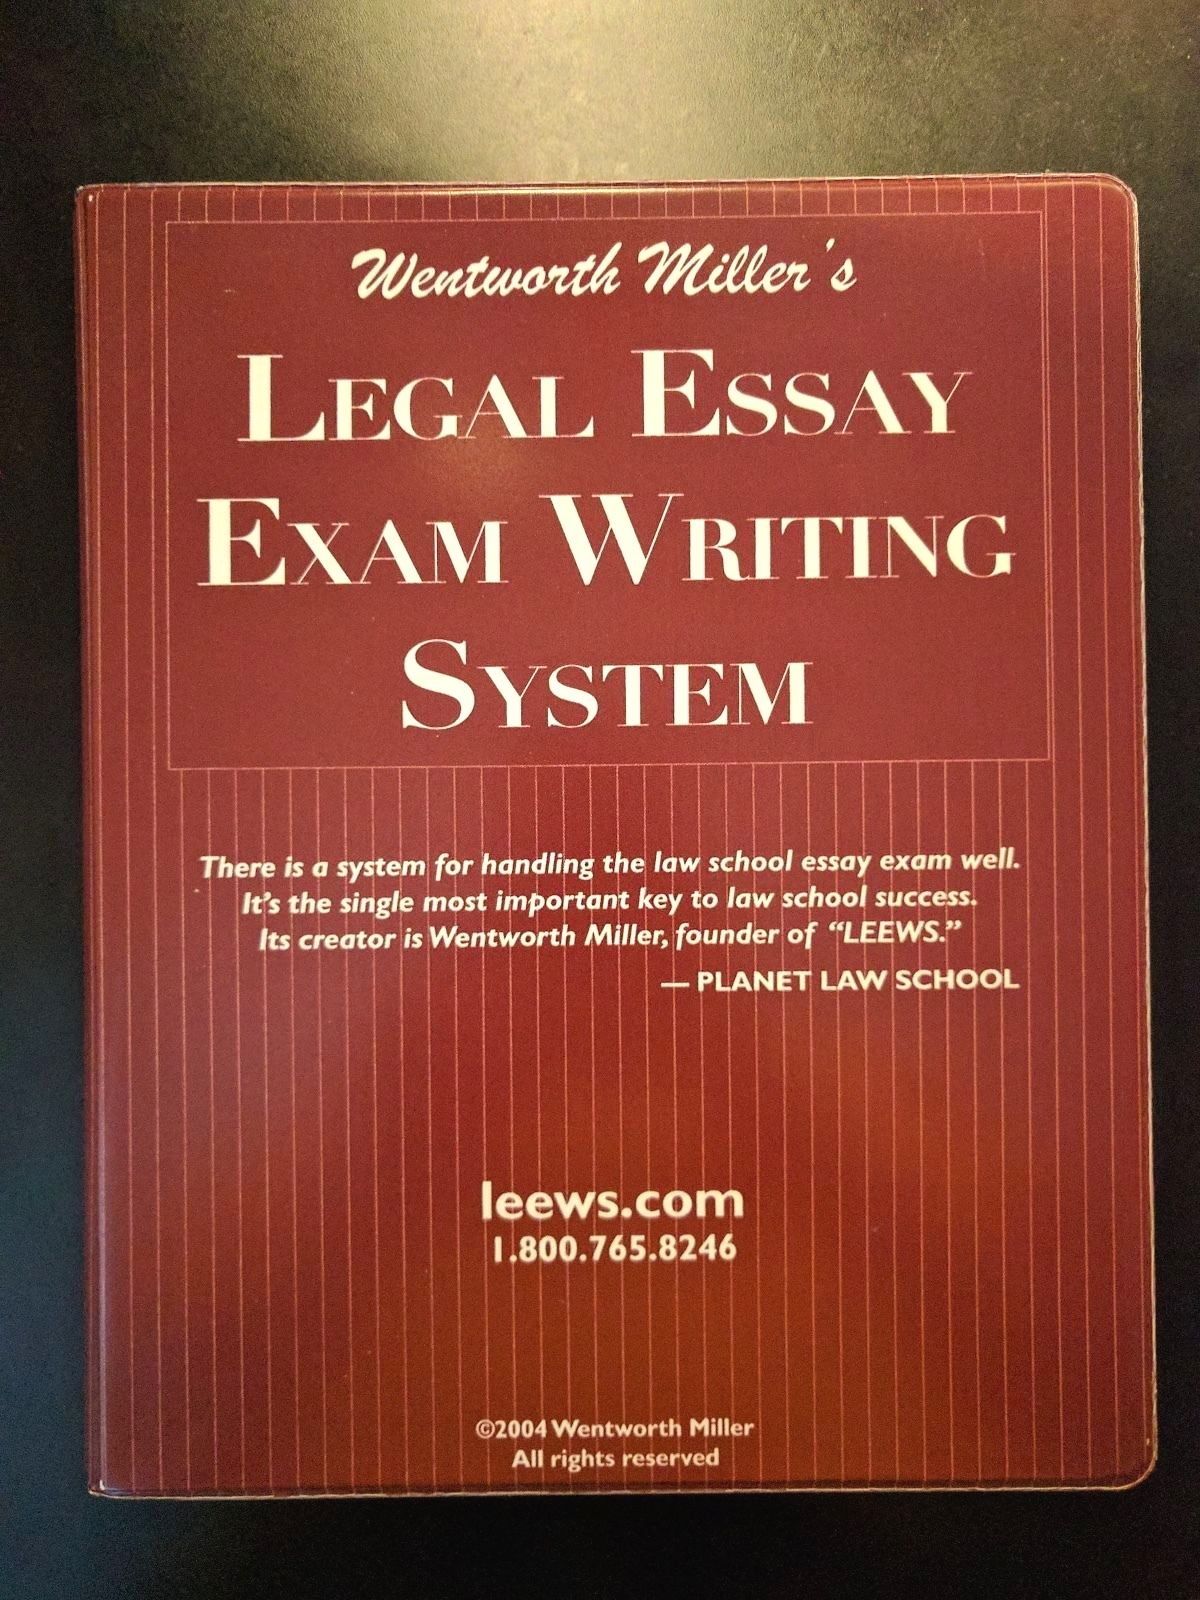 wentworth miller legal essay exam writing system Wentworth miller is the author of leews legal essay exam writing system (400 avg rating, 4 ratings, 0 reviews), the legal essay exam writing primer (00 wentworth miller legal essay exam writing system to recommend or link to this lawyer as a trusted attorney, we have provided a list of sample links.